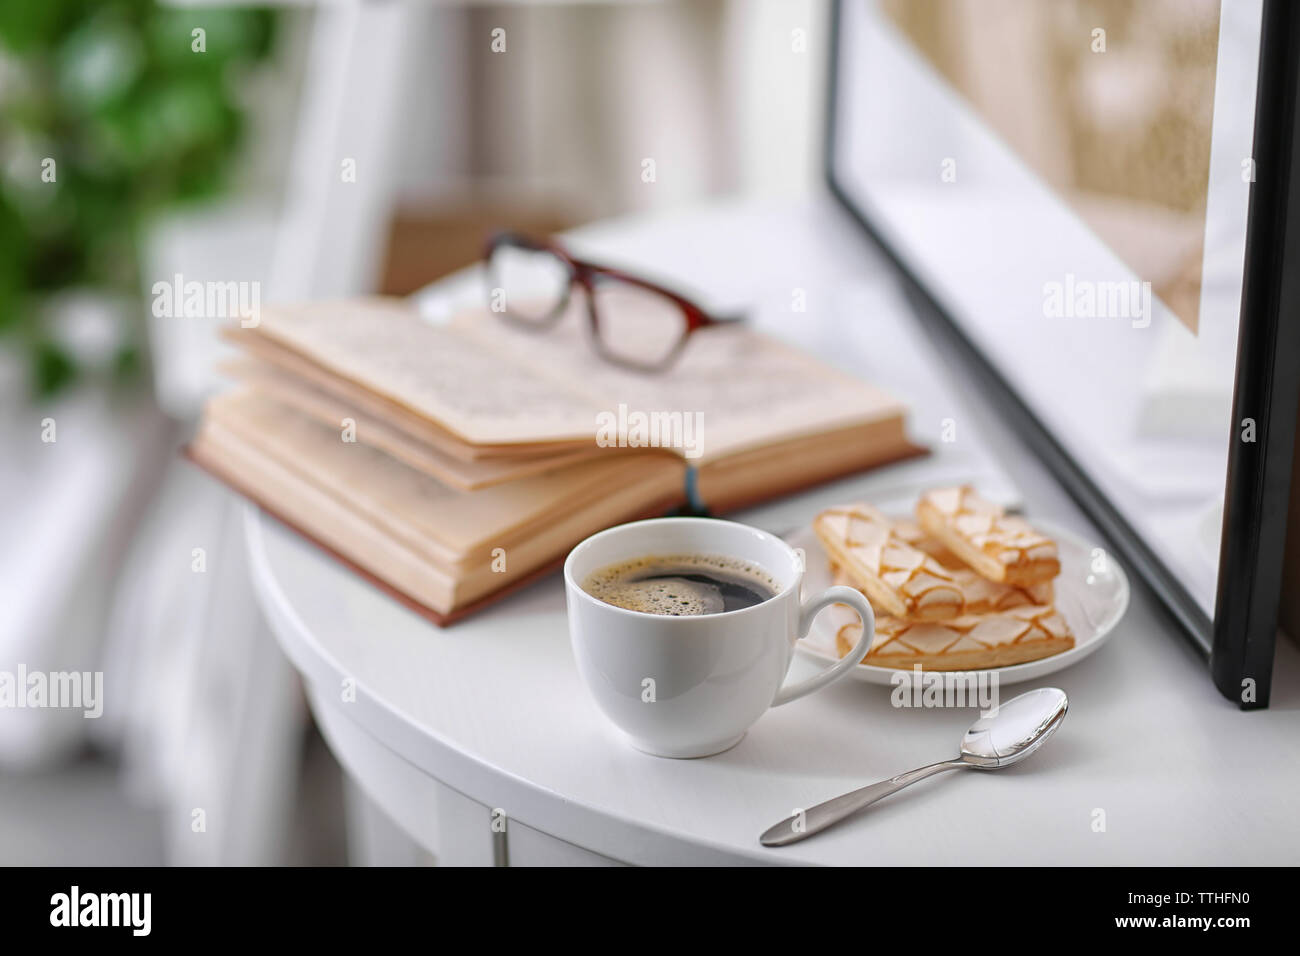 White cup of the coffee on the table  in a light room.. - Stock Image